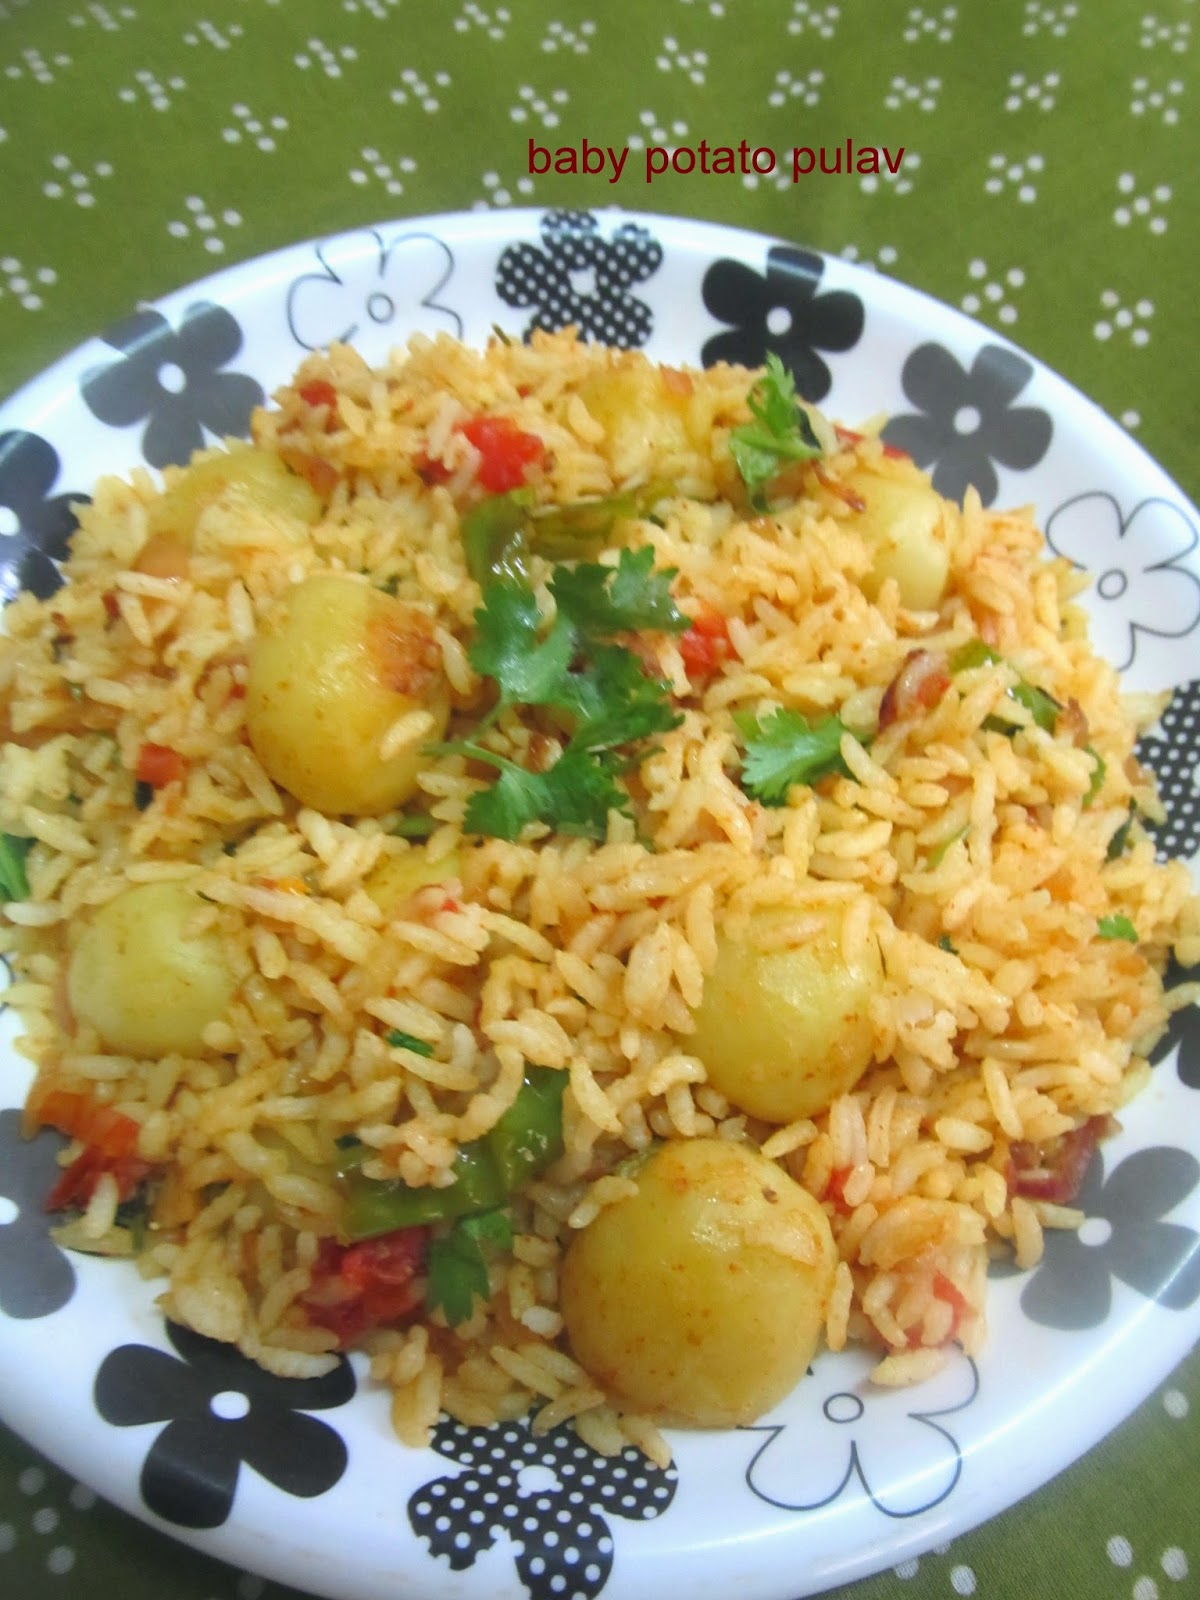 baby potato pulao